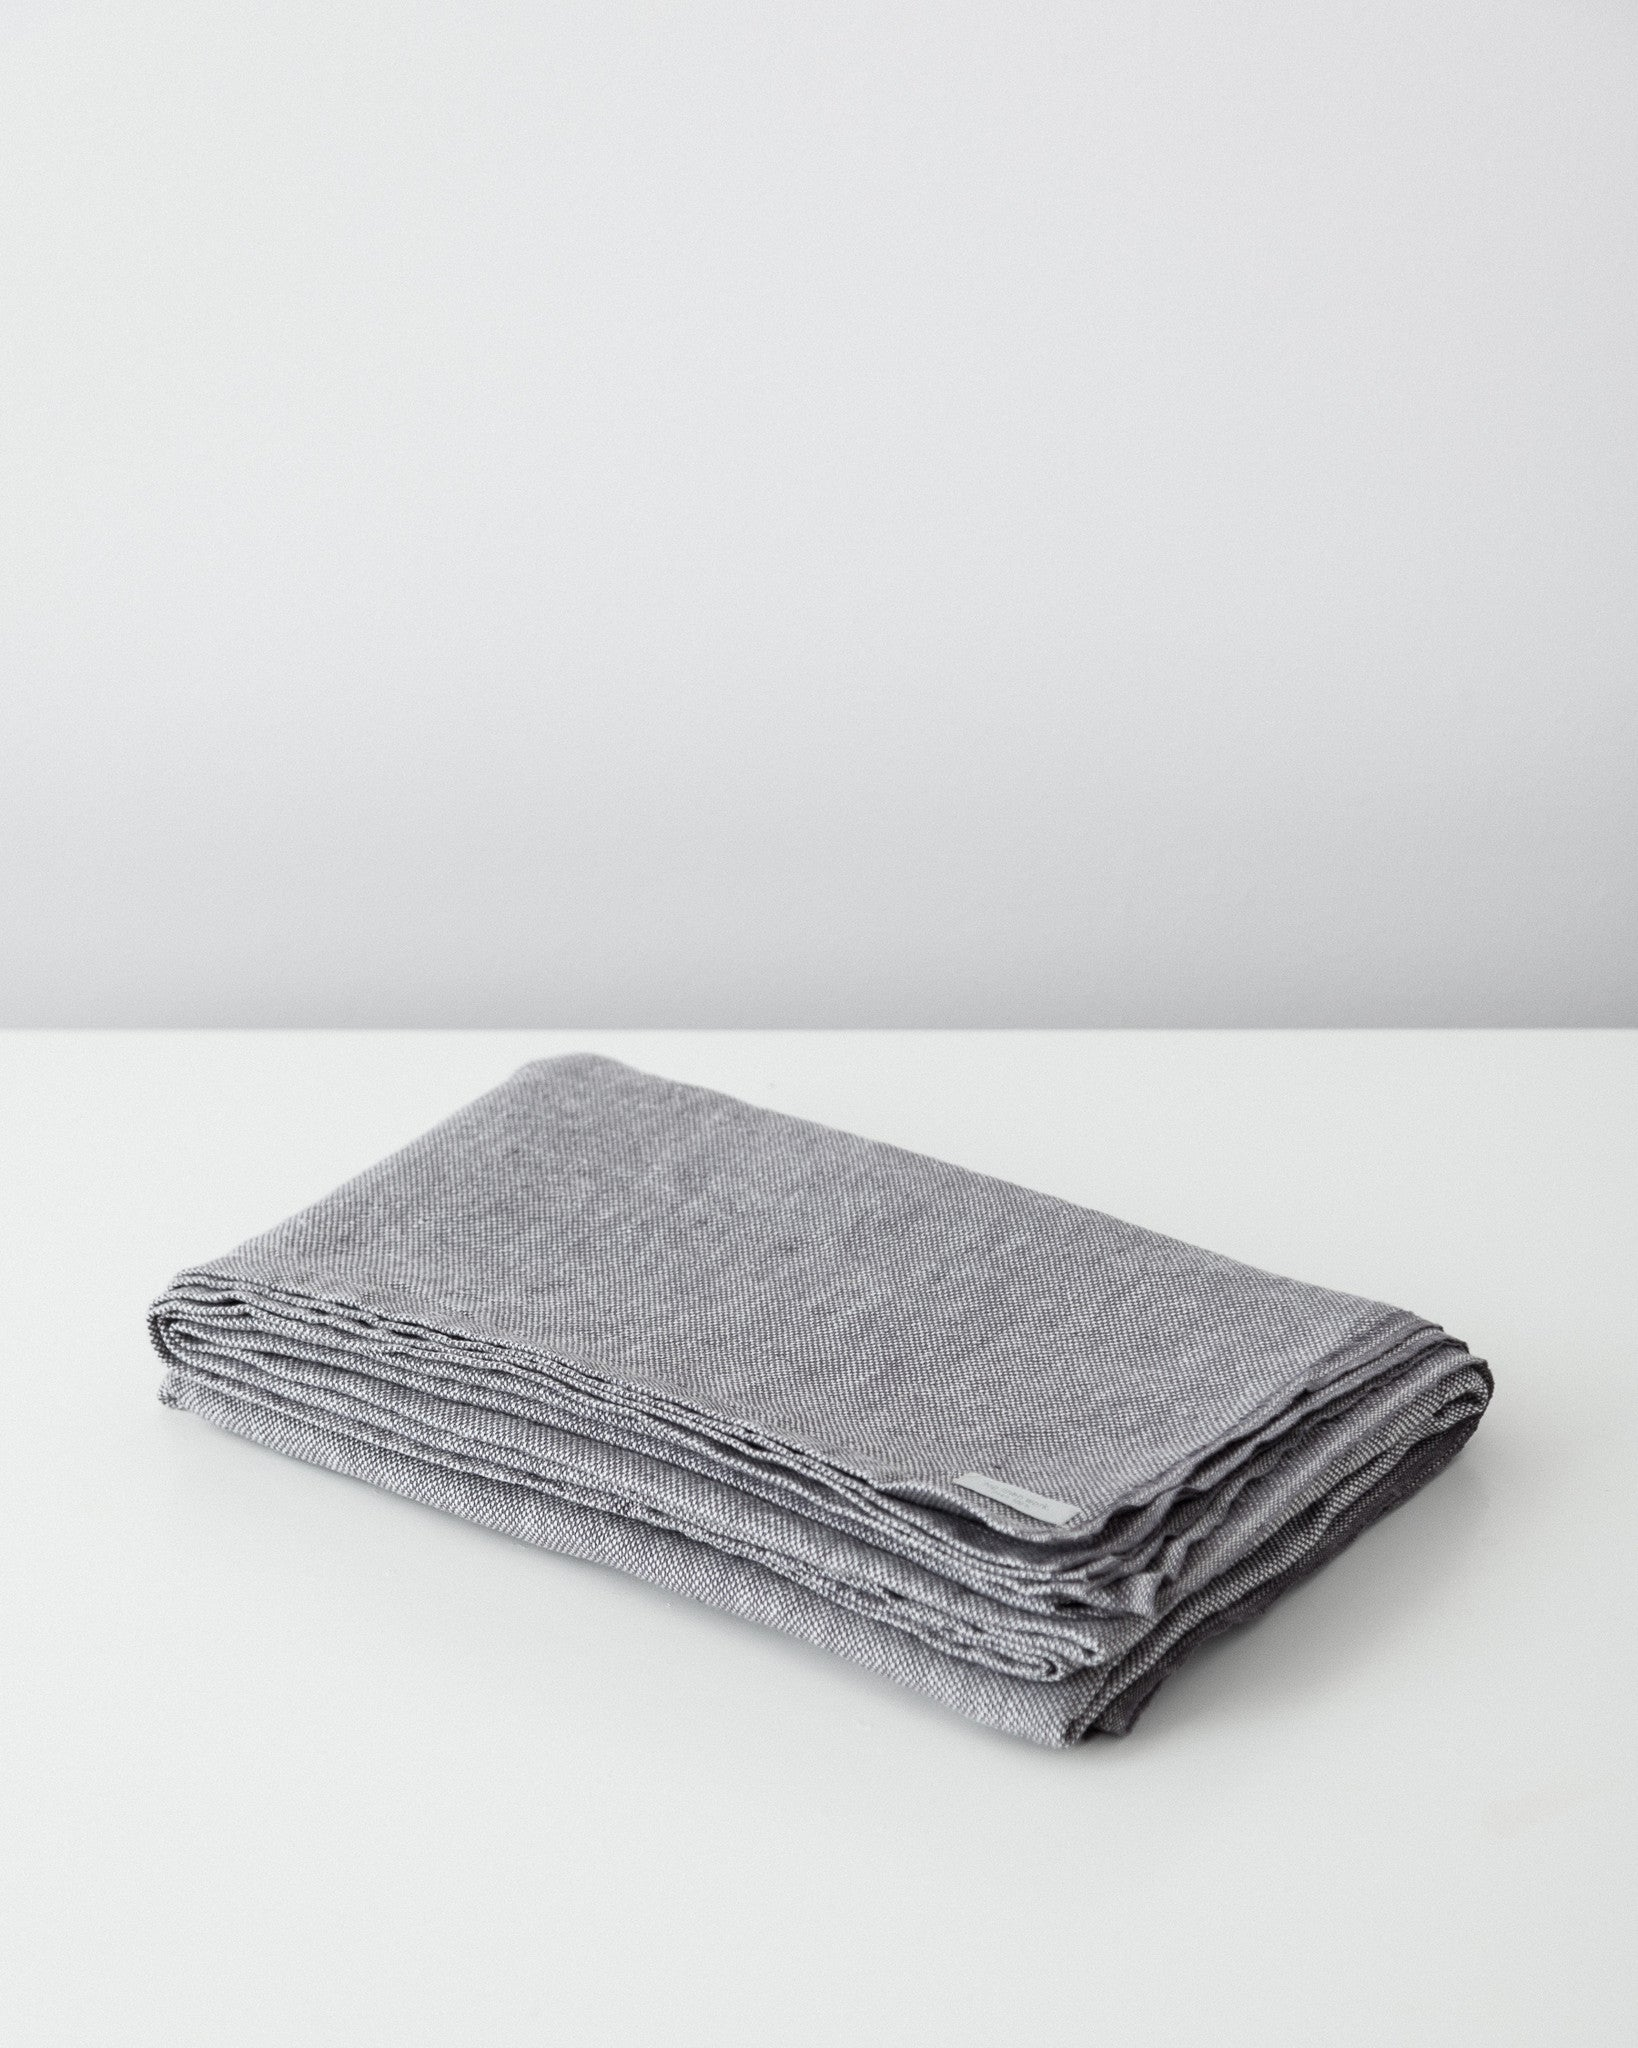 Fog Linen Work - Chambray Linen Blanket - Grey